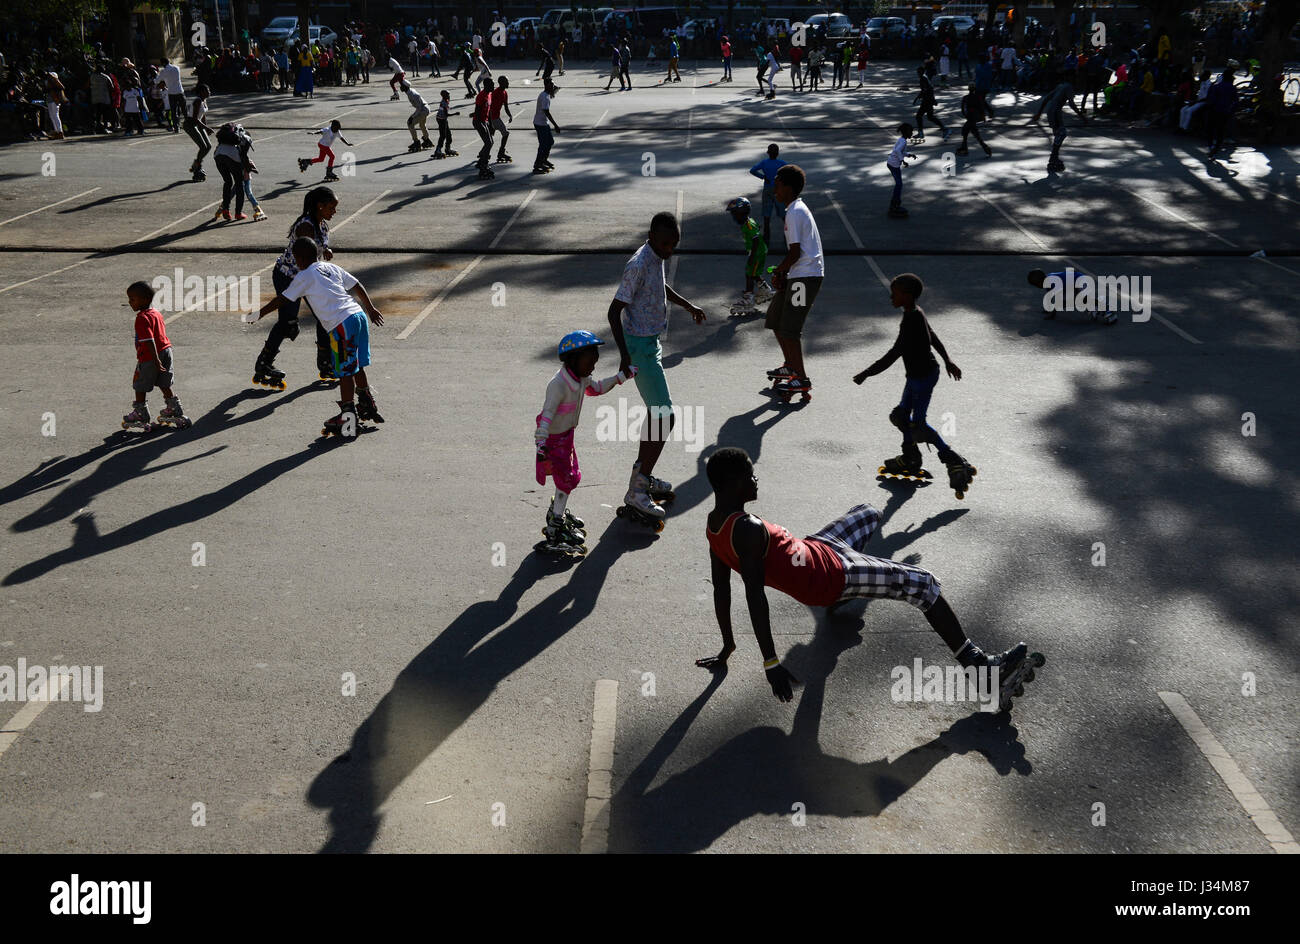 KENYA, Nairobi, young people skating with roller blades in city centre/ KENIA, Nairobi, Stadtzentrum, junge Menschen Stock Photo